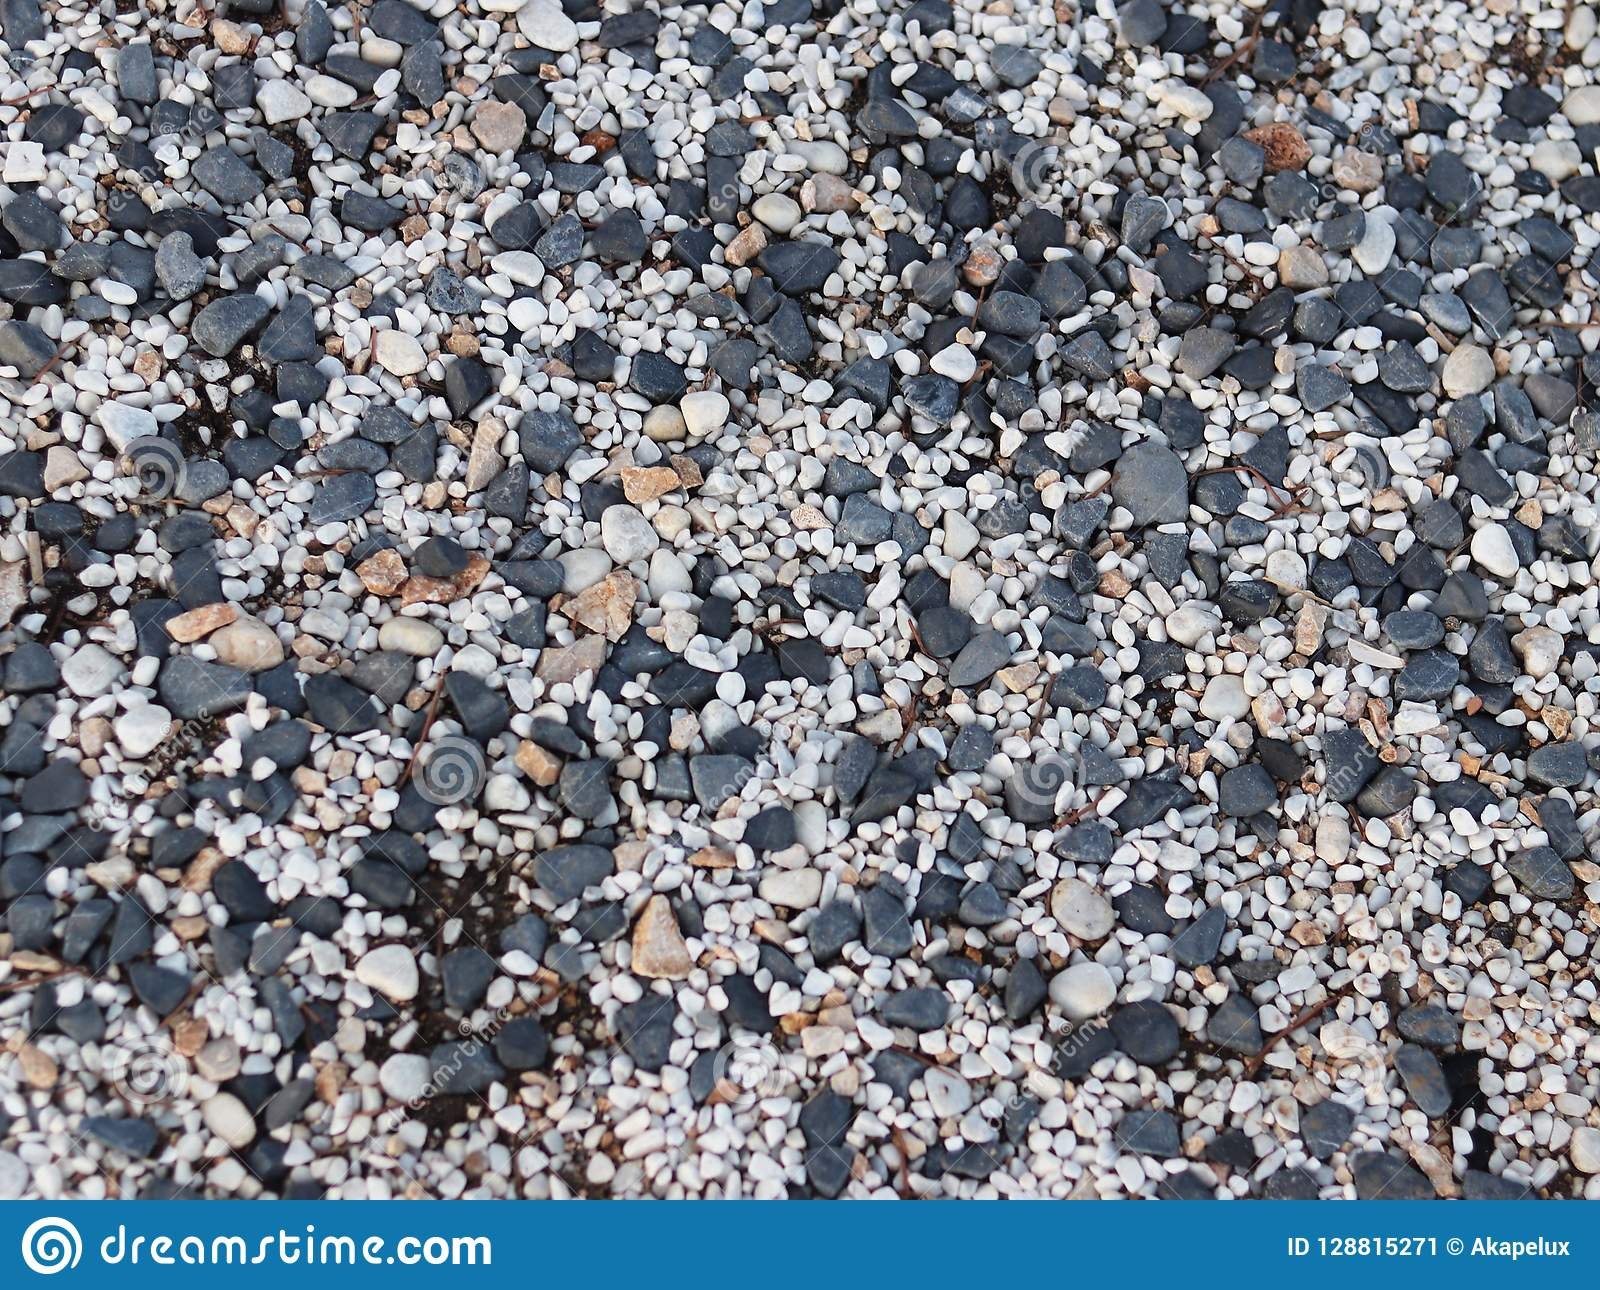 Fine pebbles of a gray shade. Beach ground. Natural material for design, decoration and construction. Sanded granite and hard mine